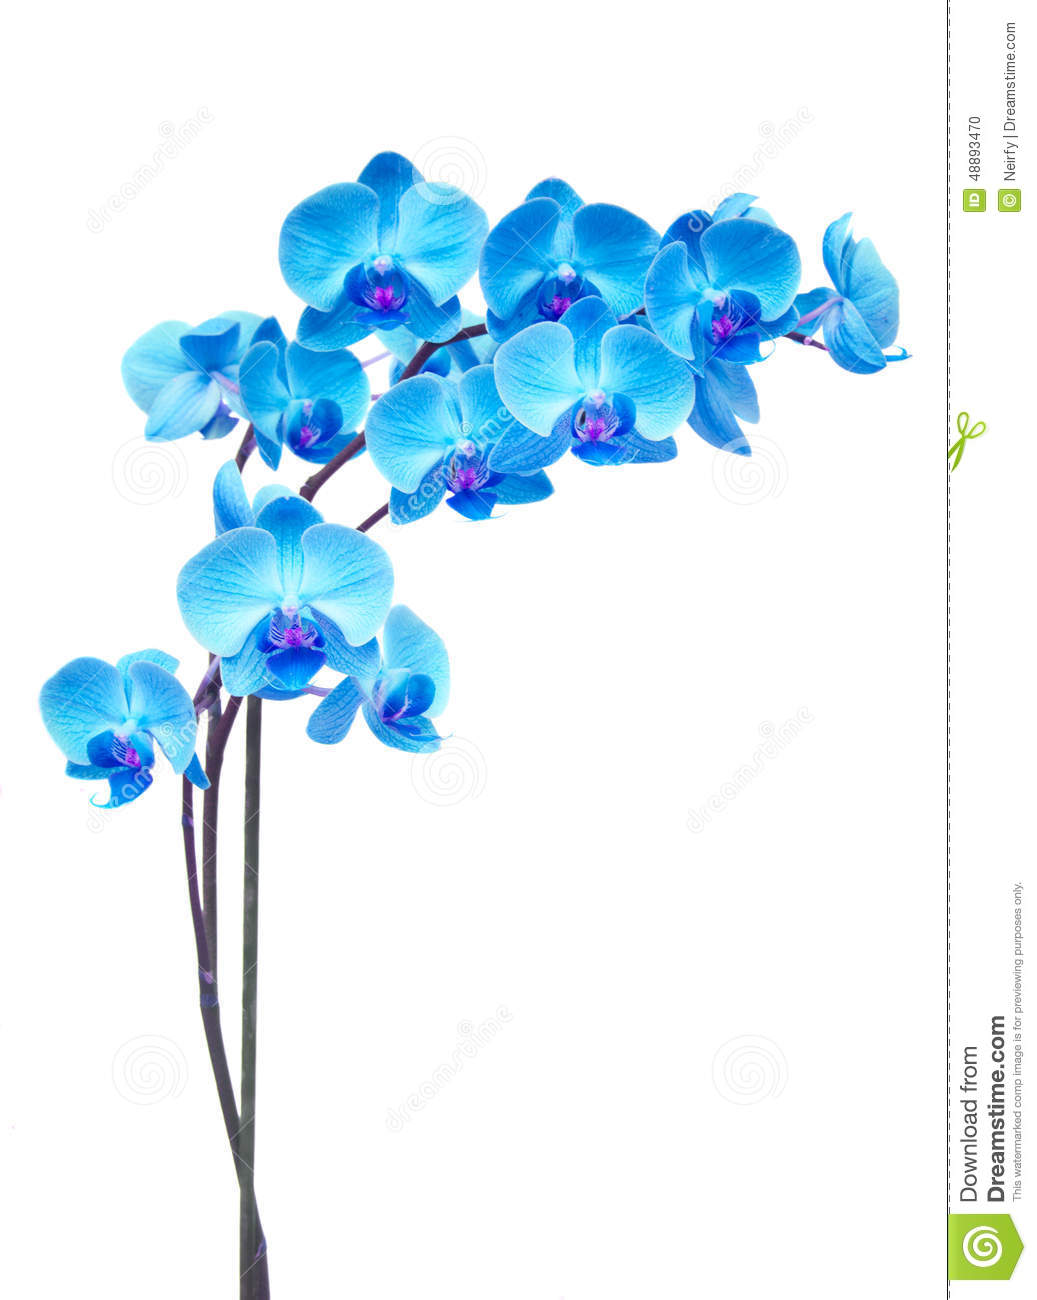 Purple orchid branch stock photo. Image of leaf, petal ...